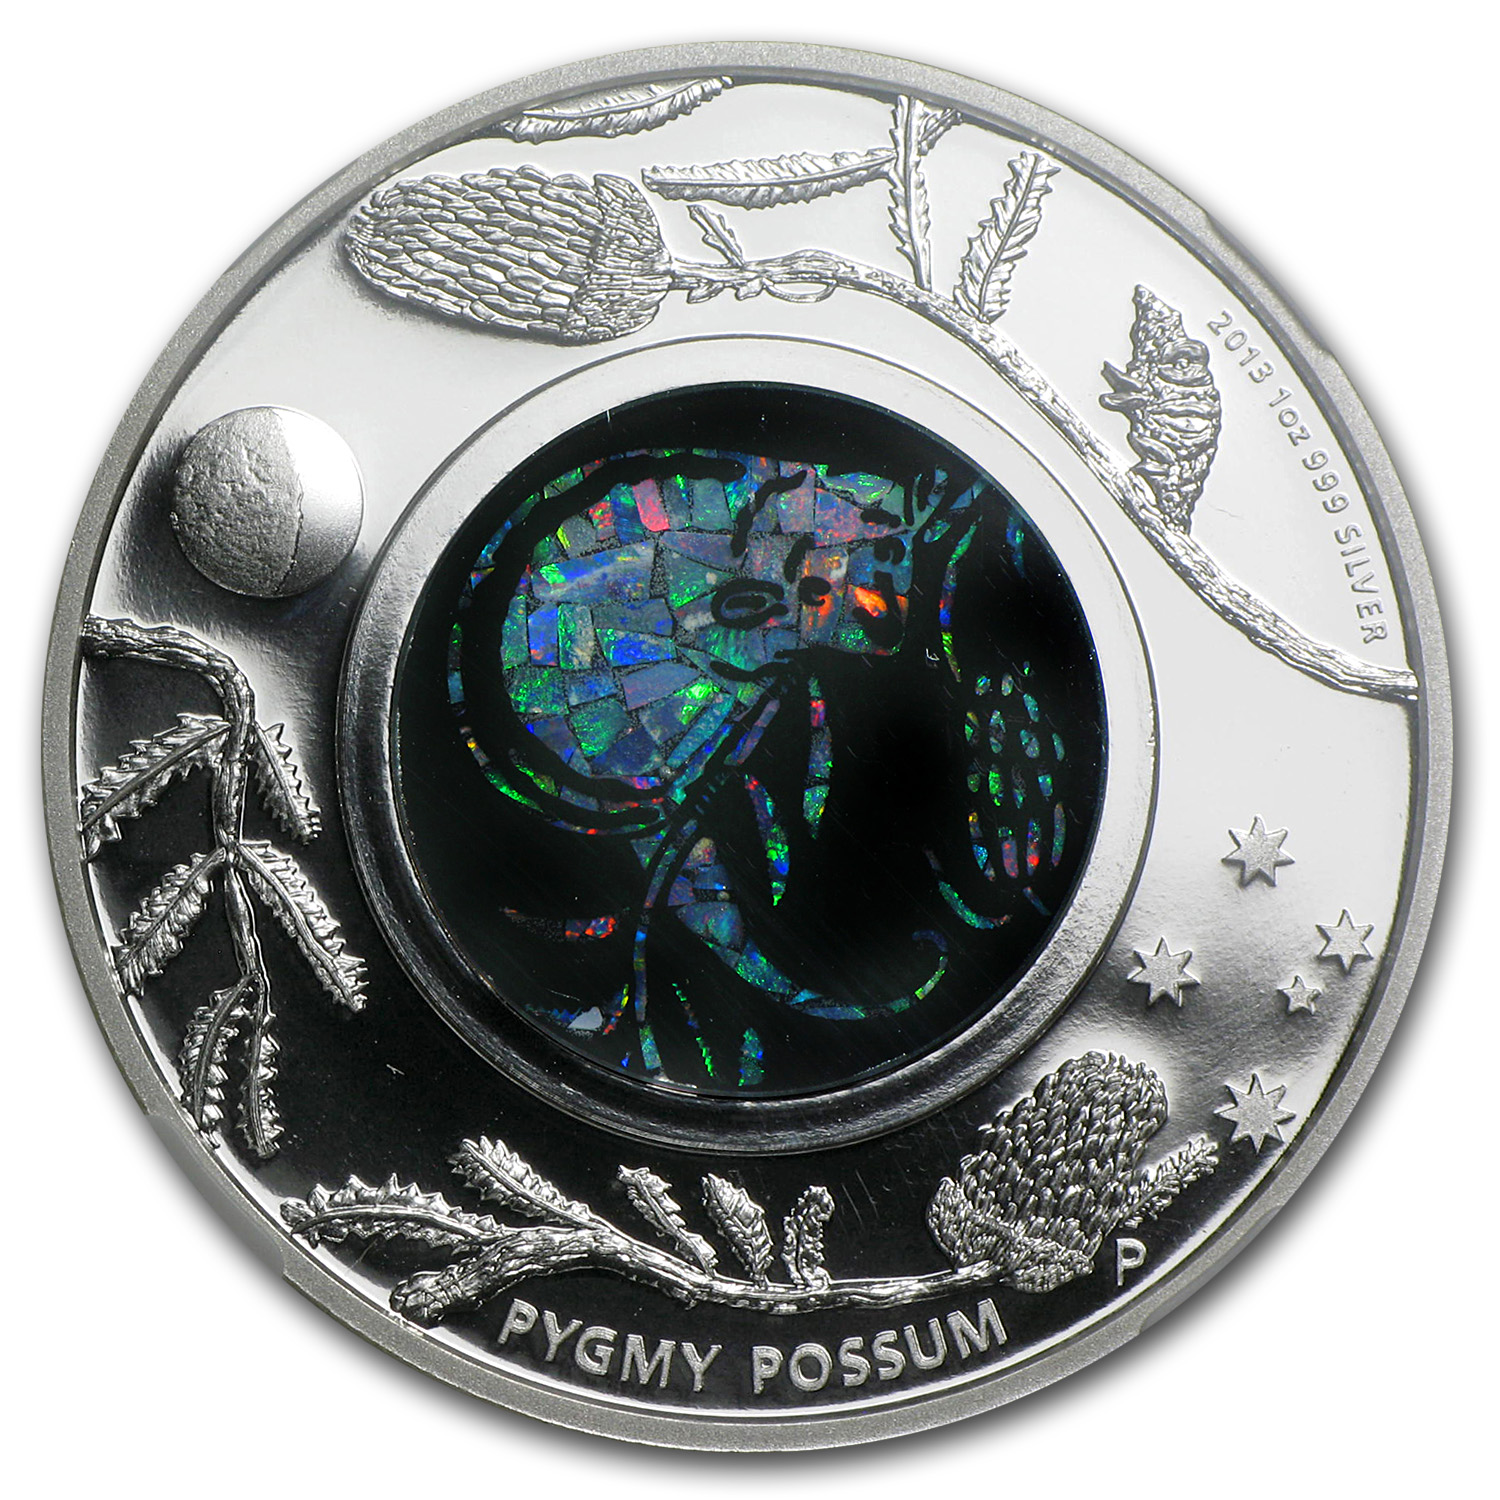 2013 1 oz Proof Silver Pygmy Possum - Opal Series PF-70 NGC